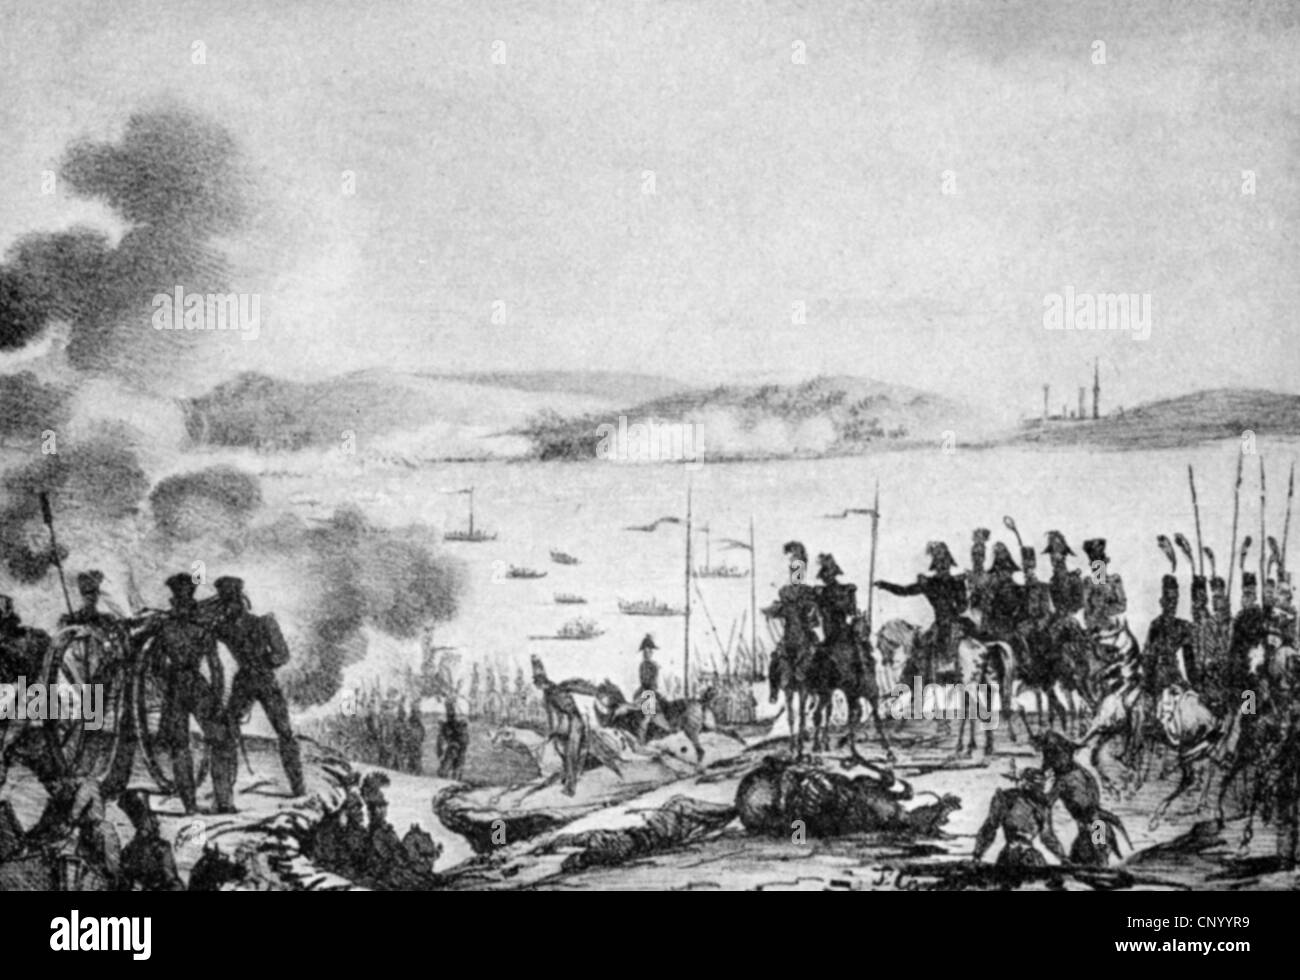 events, Ninth Russo-Turkish War 1828 - 1829, the Russians crossing the  Danube, 8.6.1828, wood engraving, 19th century, army, river, Ottoman  Empire, ...